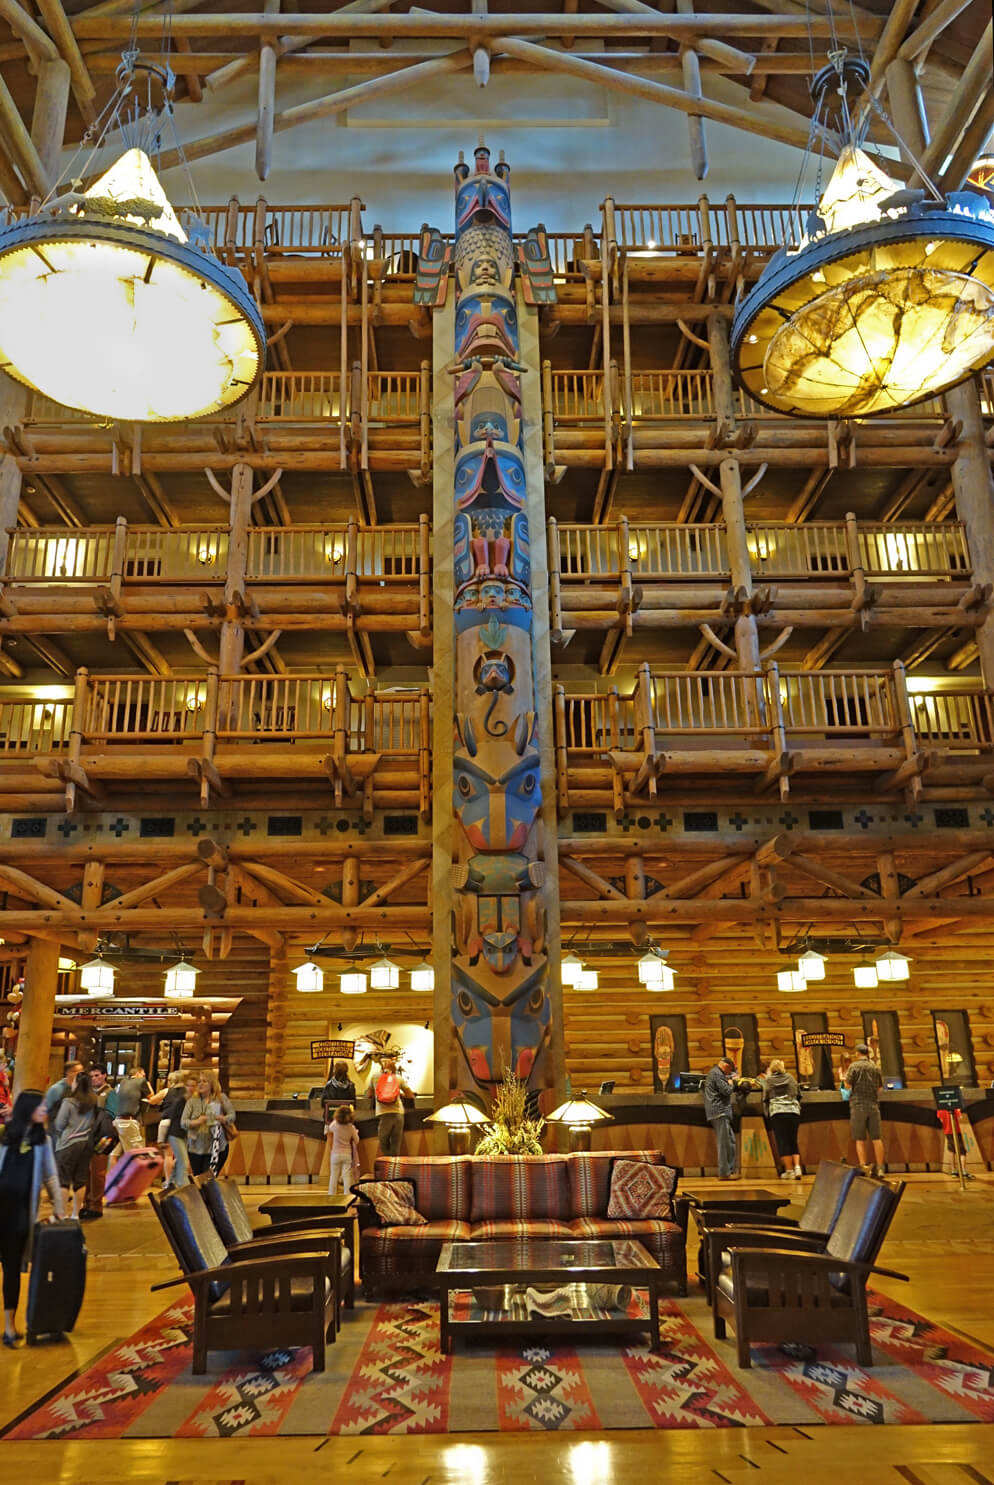 Disney's Deluxe Resorts - Disney's Wilderness Lodge